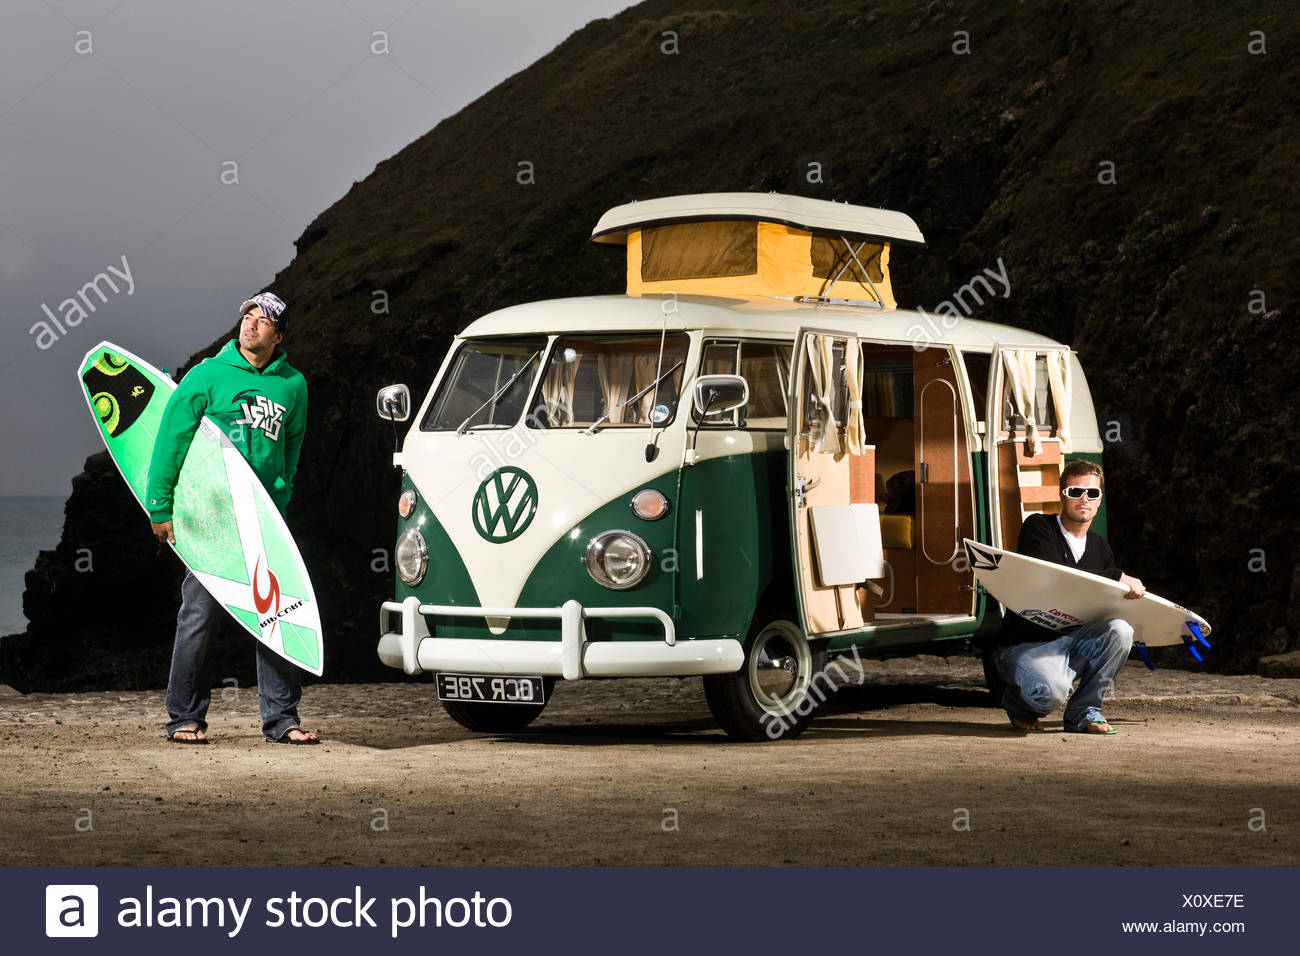 Two surfers with VW campervan, St Agnes, Cornwall, UK - Stock Image